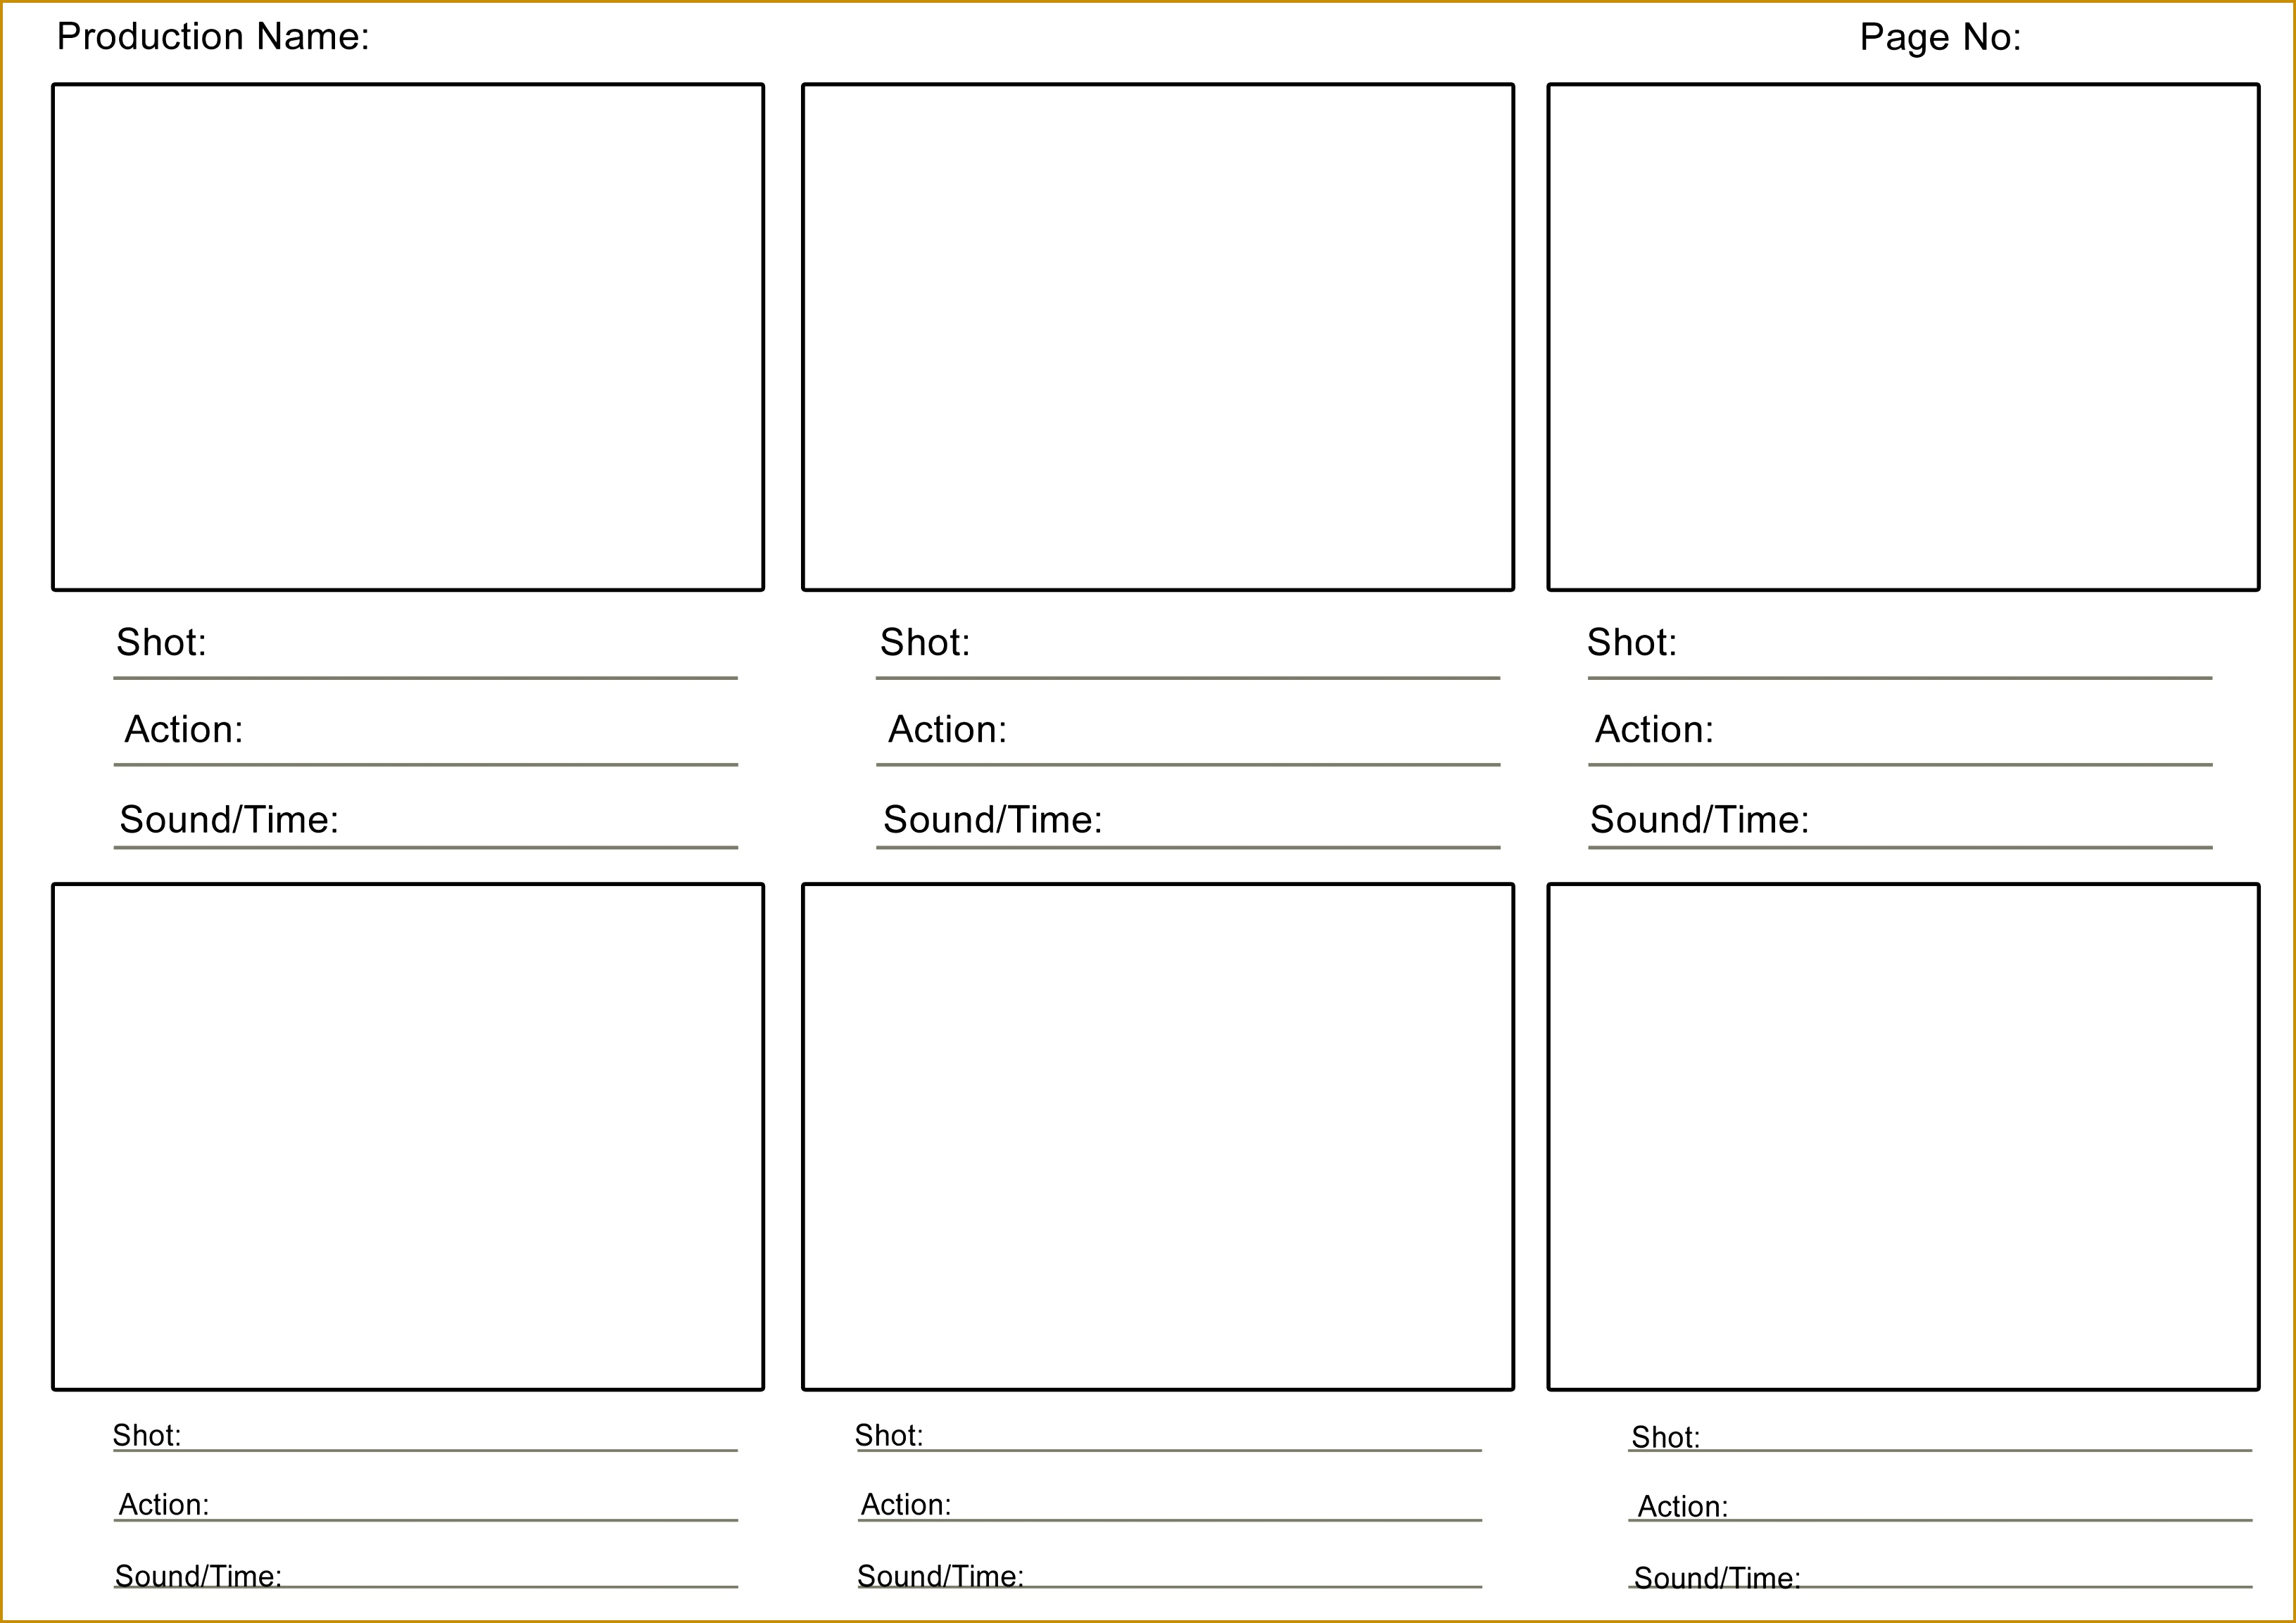 5 Storyboard Template In Word Fabtemplatez